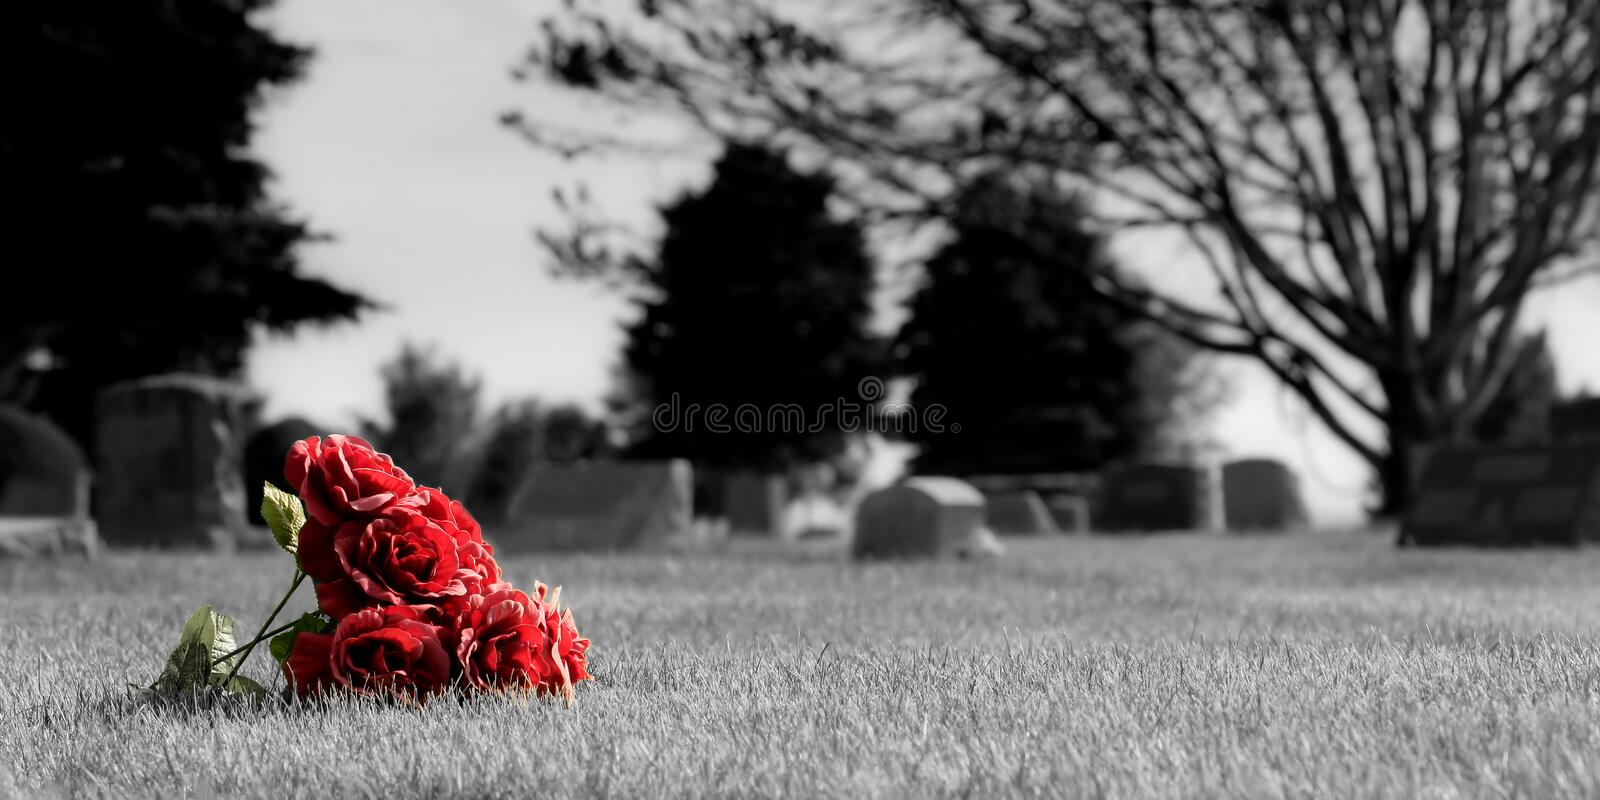 Cemetery flowers. A small bouquet of roses, lost in the grass at a cemetery. aspect ratio is 2:1. desatured background to enhance the mood and bring out the royalty free stock image